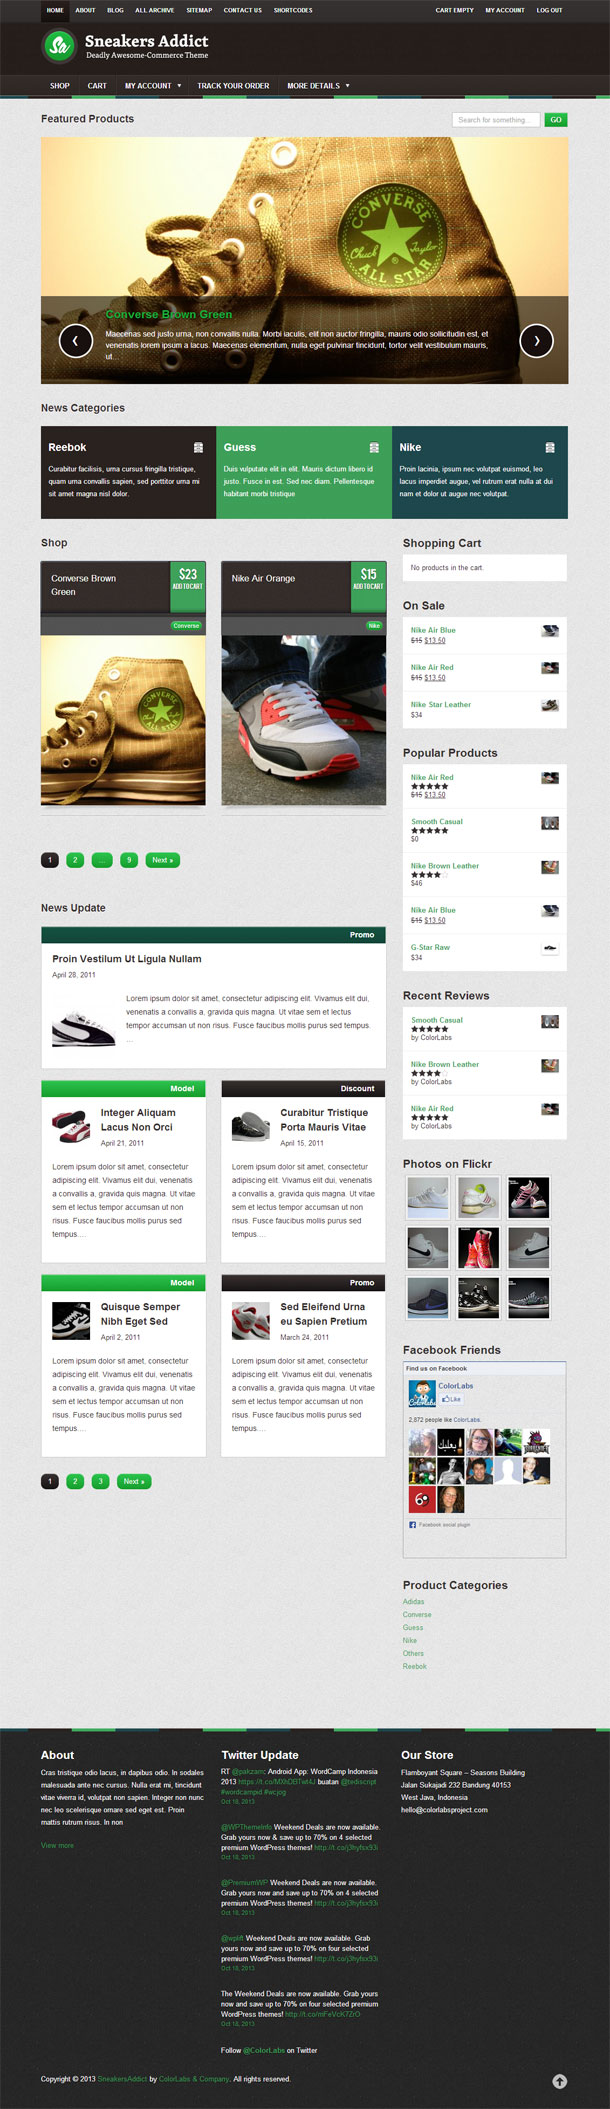 Sneakers Addict ECommerce Theme Image